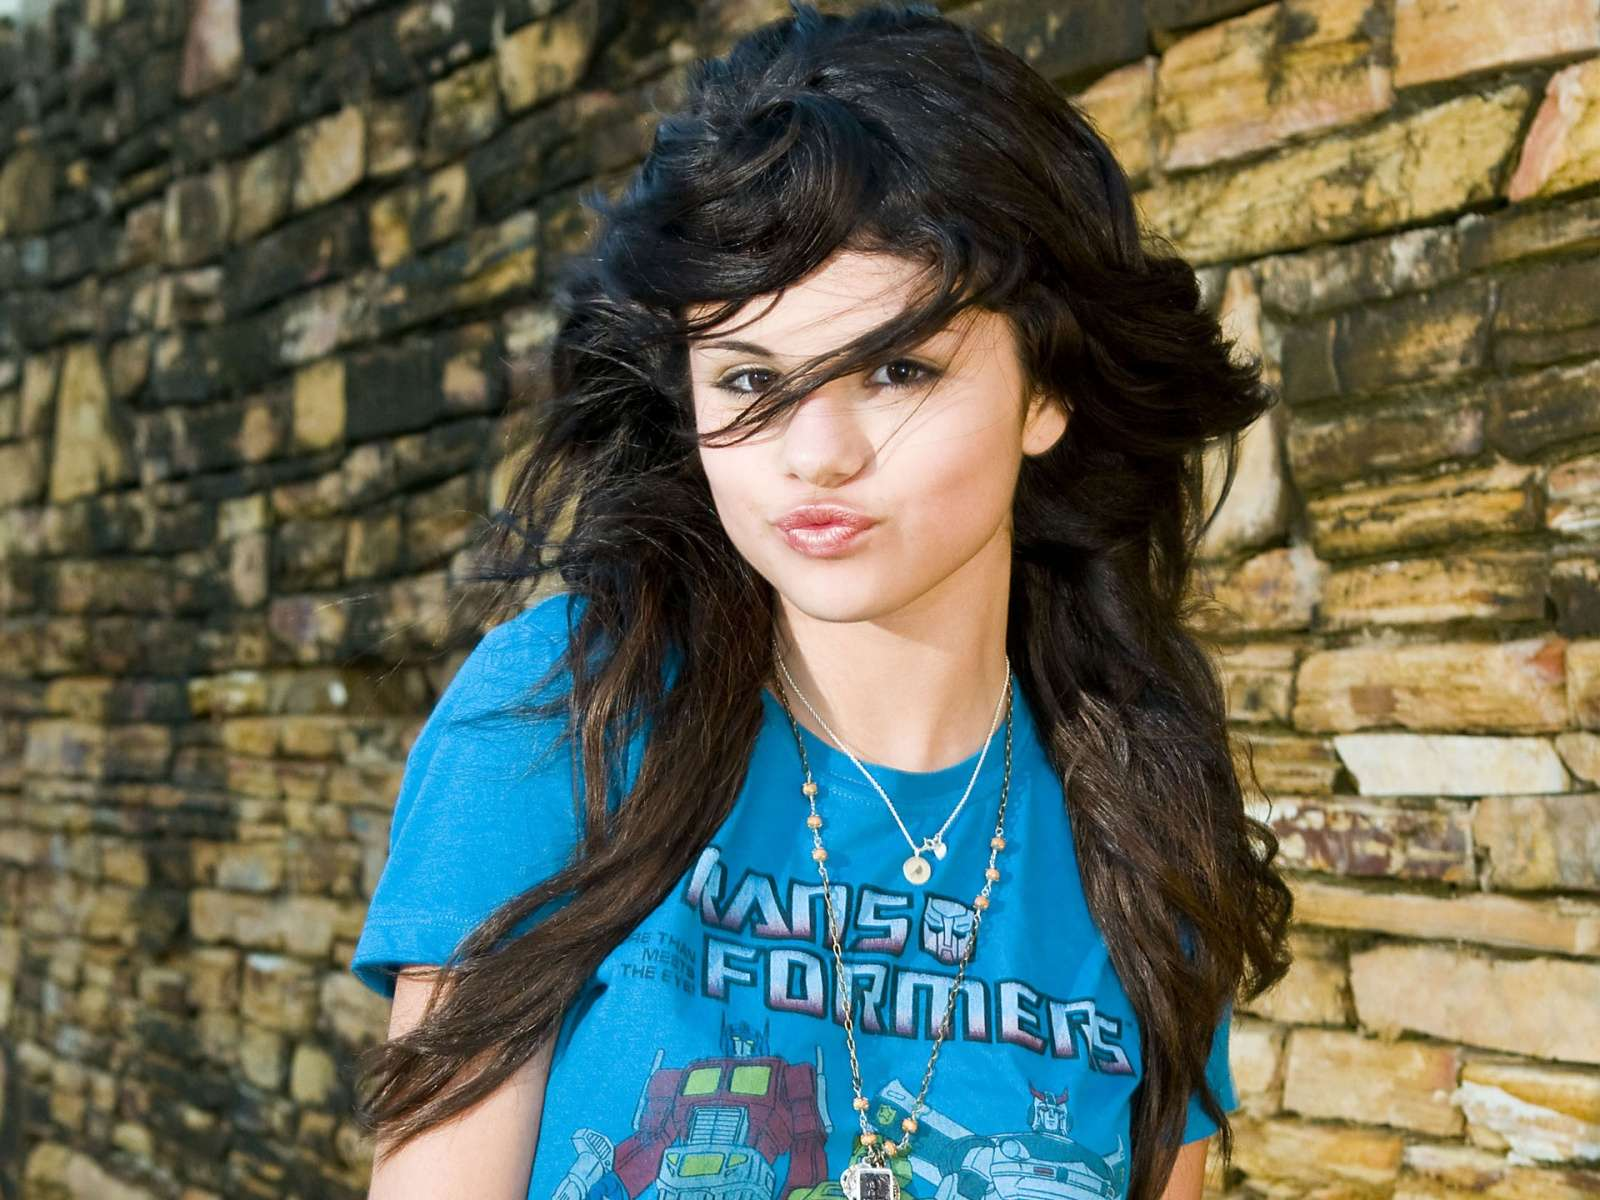 Super Cars And Bikes Hd Wallpapers Selena Gomez 14 Hd Wallpapers